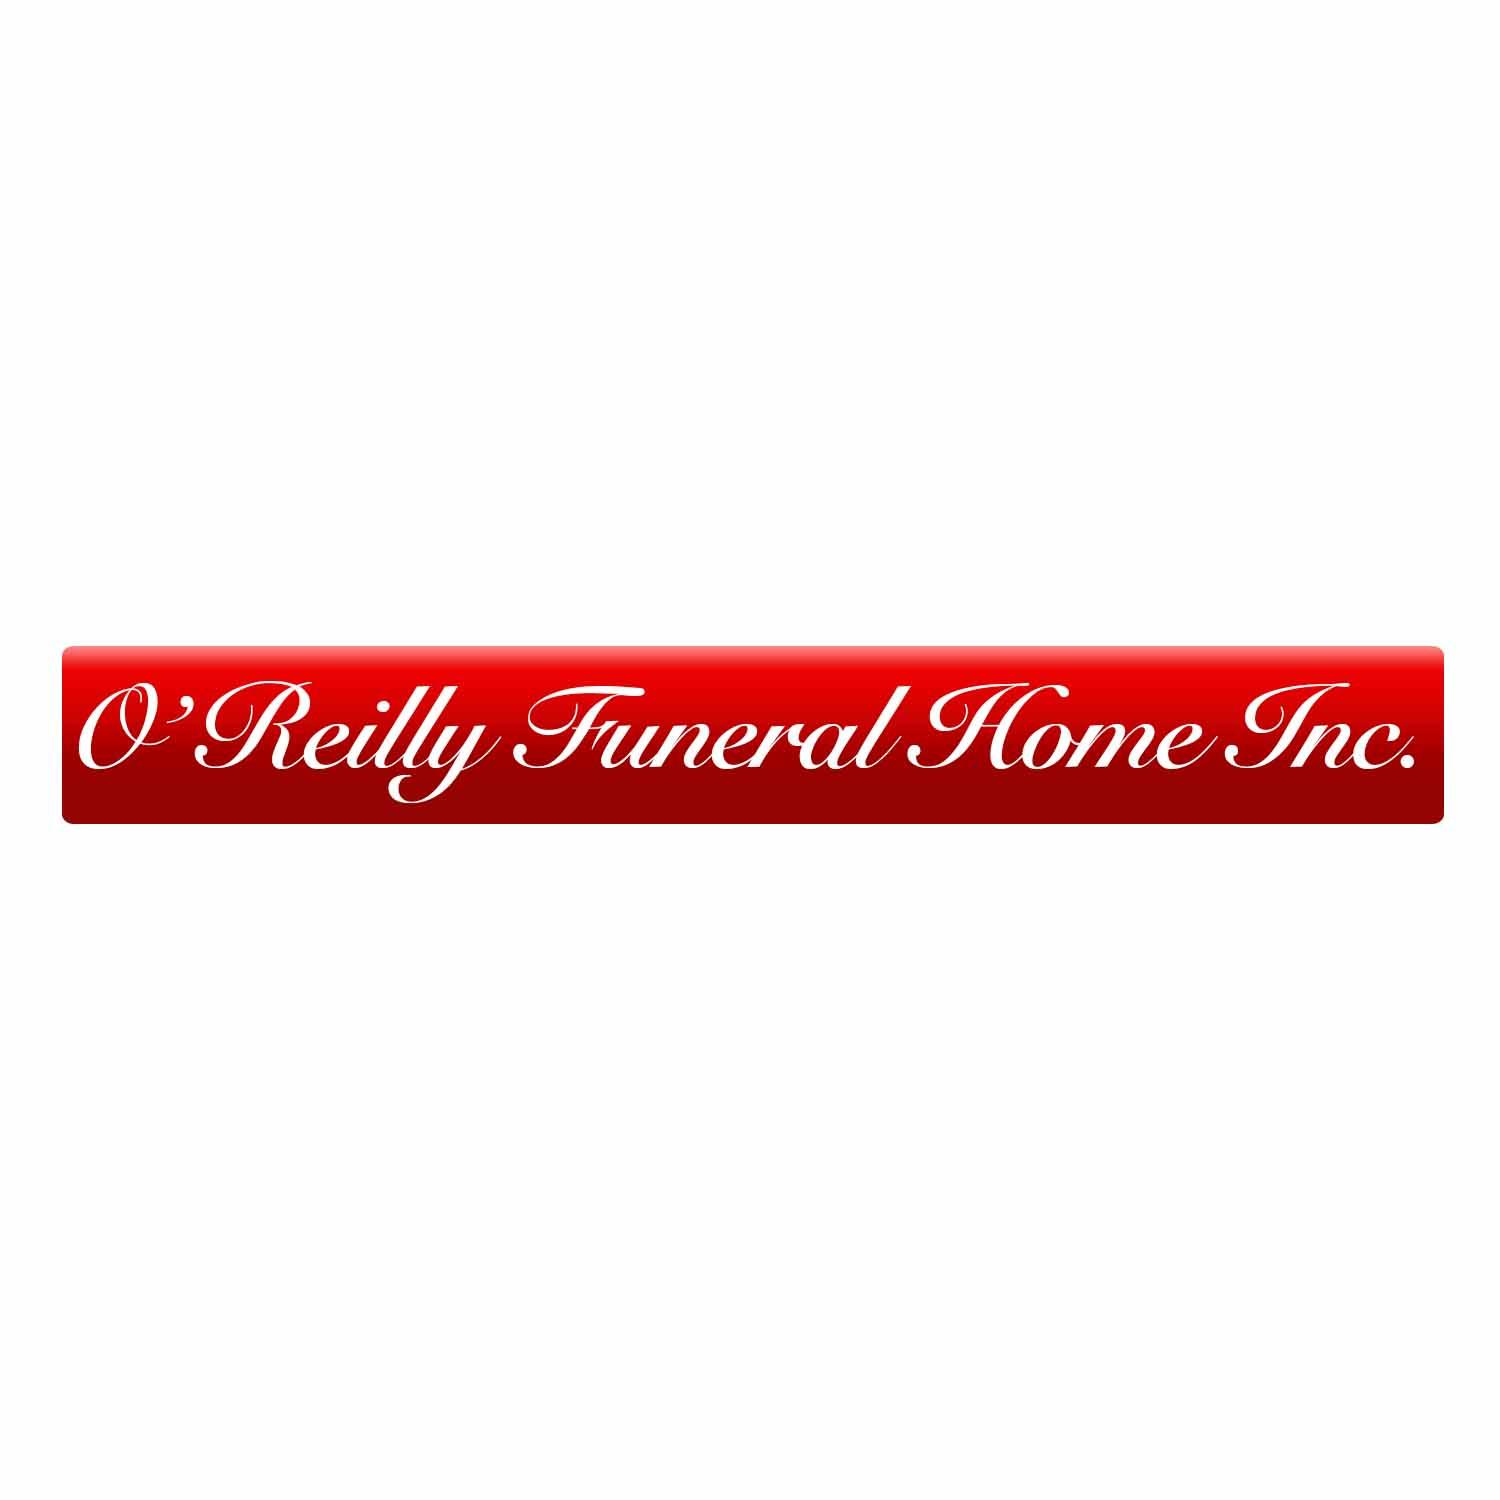 O'reilly Funeral Home - Rosedale, NY - Funeral Homes & Services